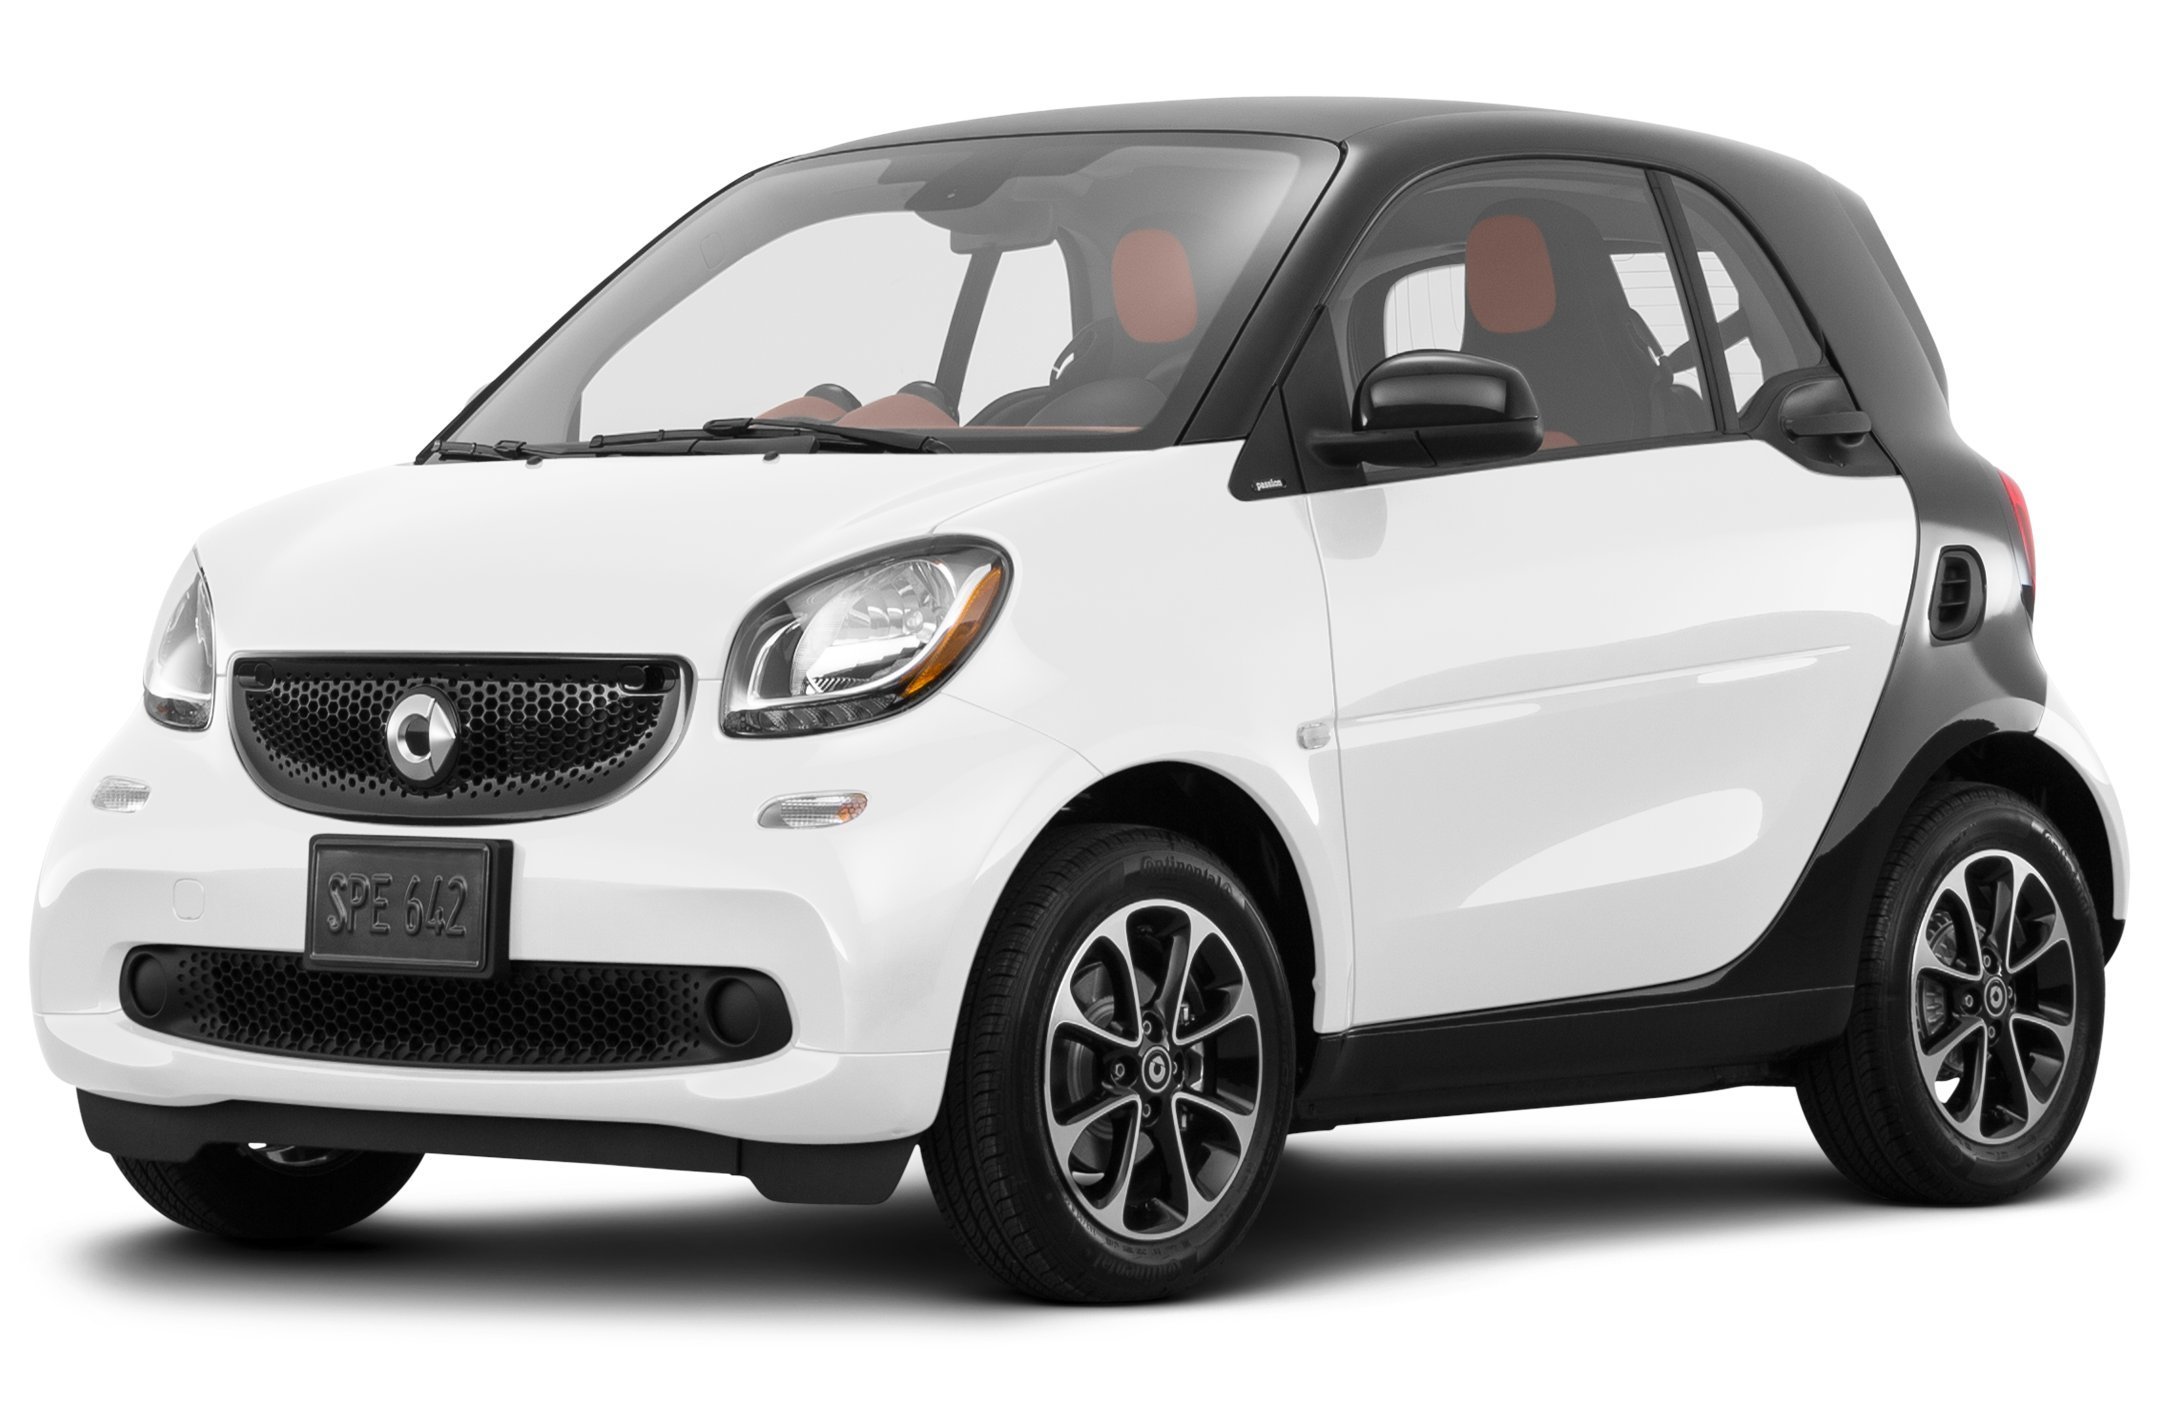 2016 smart fortwo reviews images and specs vehicles. Black Bedroom Furniture Sets. Home Design Ideas